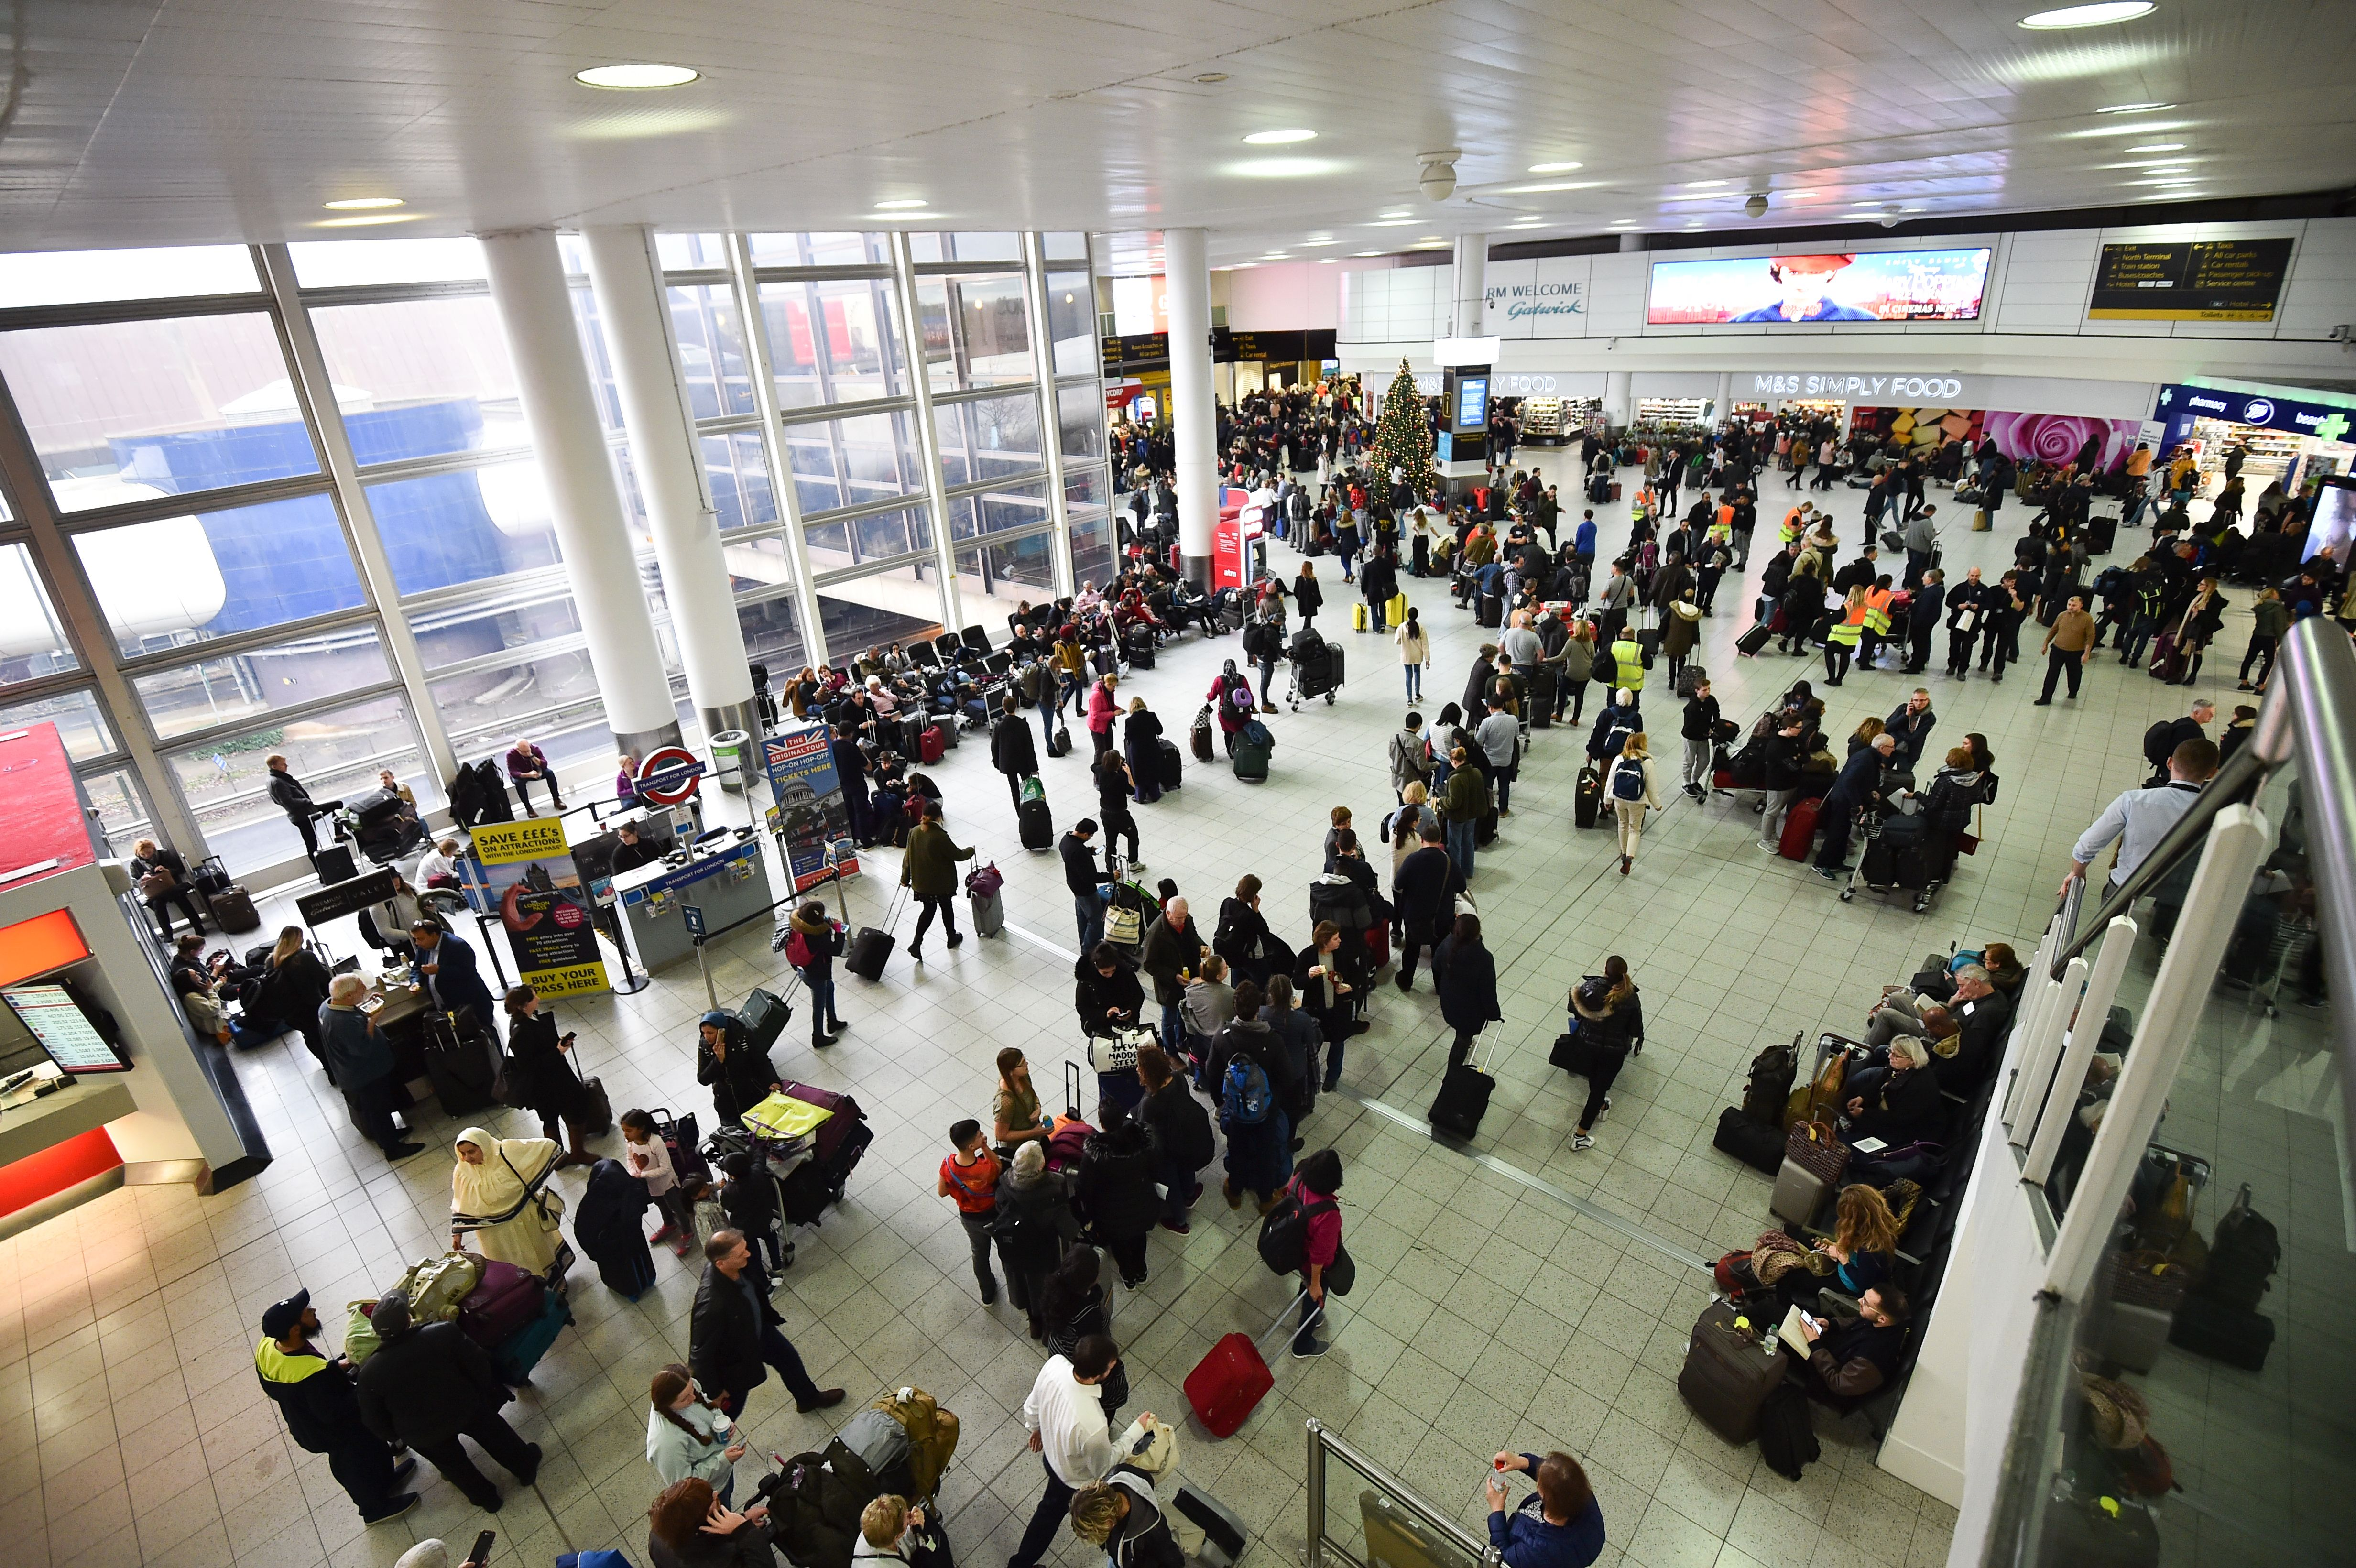 Passengers wait at London Gatwick Airport, south of London, on December 20, 2018 after all flights were grounded due to drones flying over the airfield. - London Gatwick Airport was forced to suspend all flights on December 20 due to drones flying over the airfield, causing misery for tens of thousands of stuck passengers just days before Christmas. (Photo by Glyn KIRK / AFP)